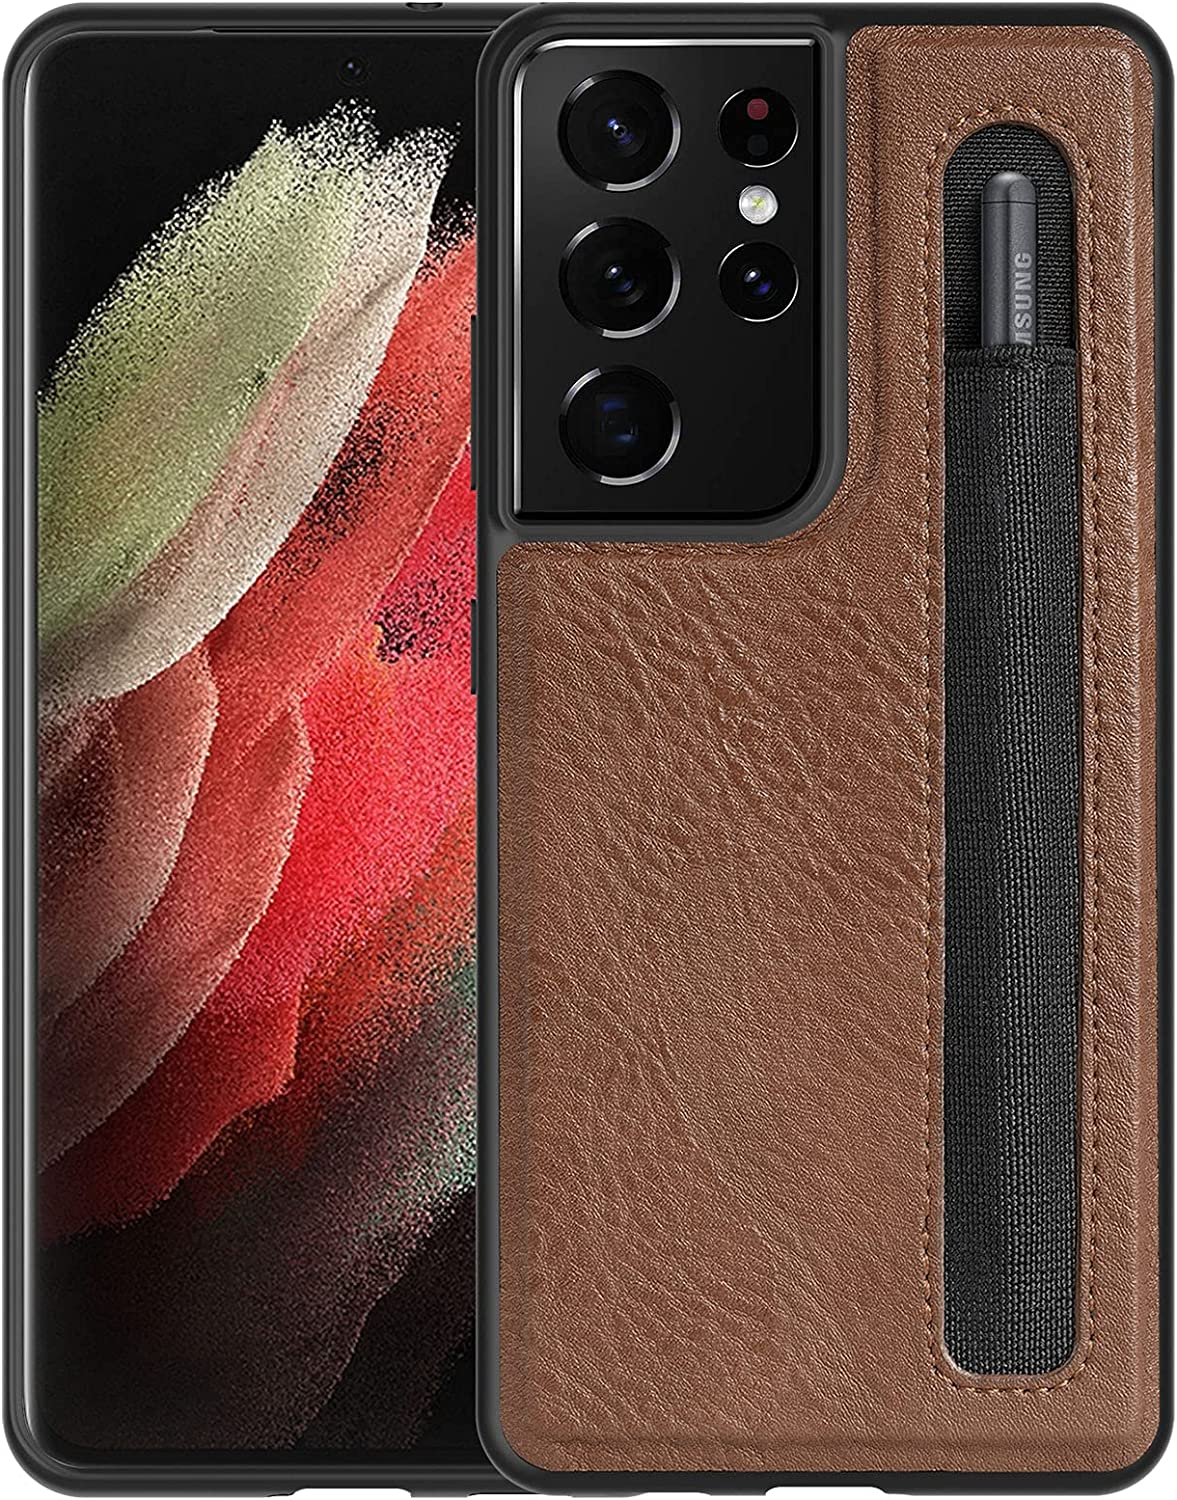 CloudValley for Galaxy S21 Ultra 5G Case with S Pen Holder, Slim Soft TPU and Leather Hybrid Pen Slot Case - Brown